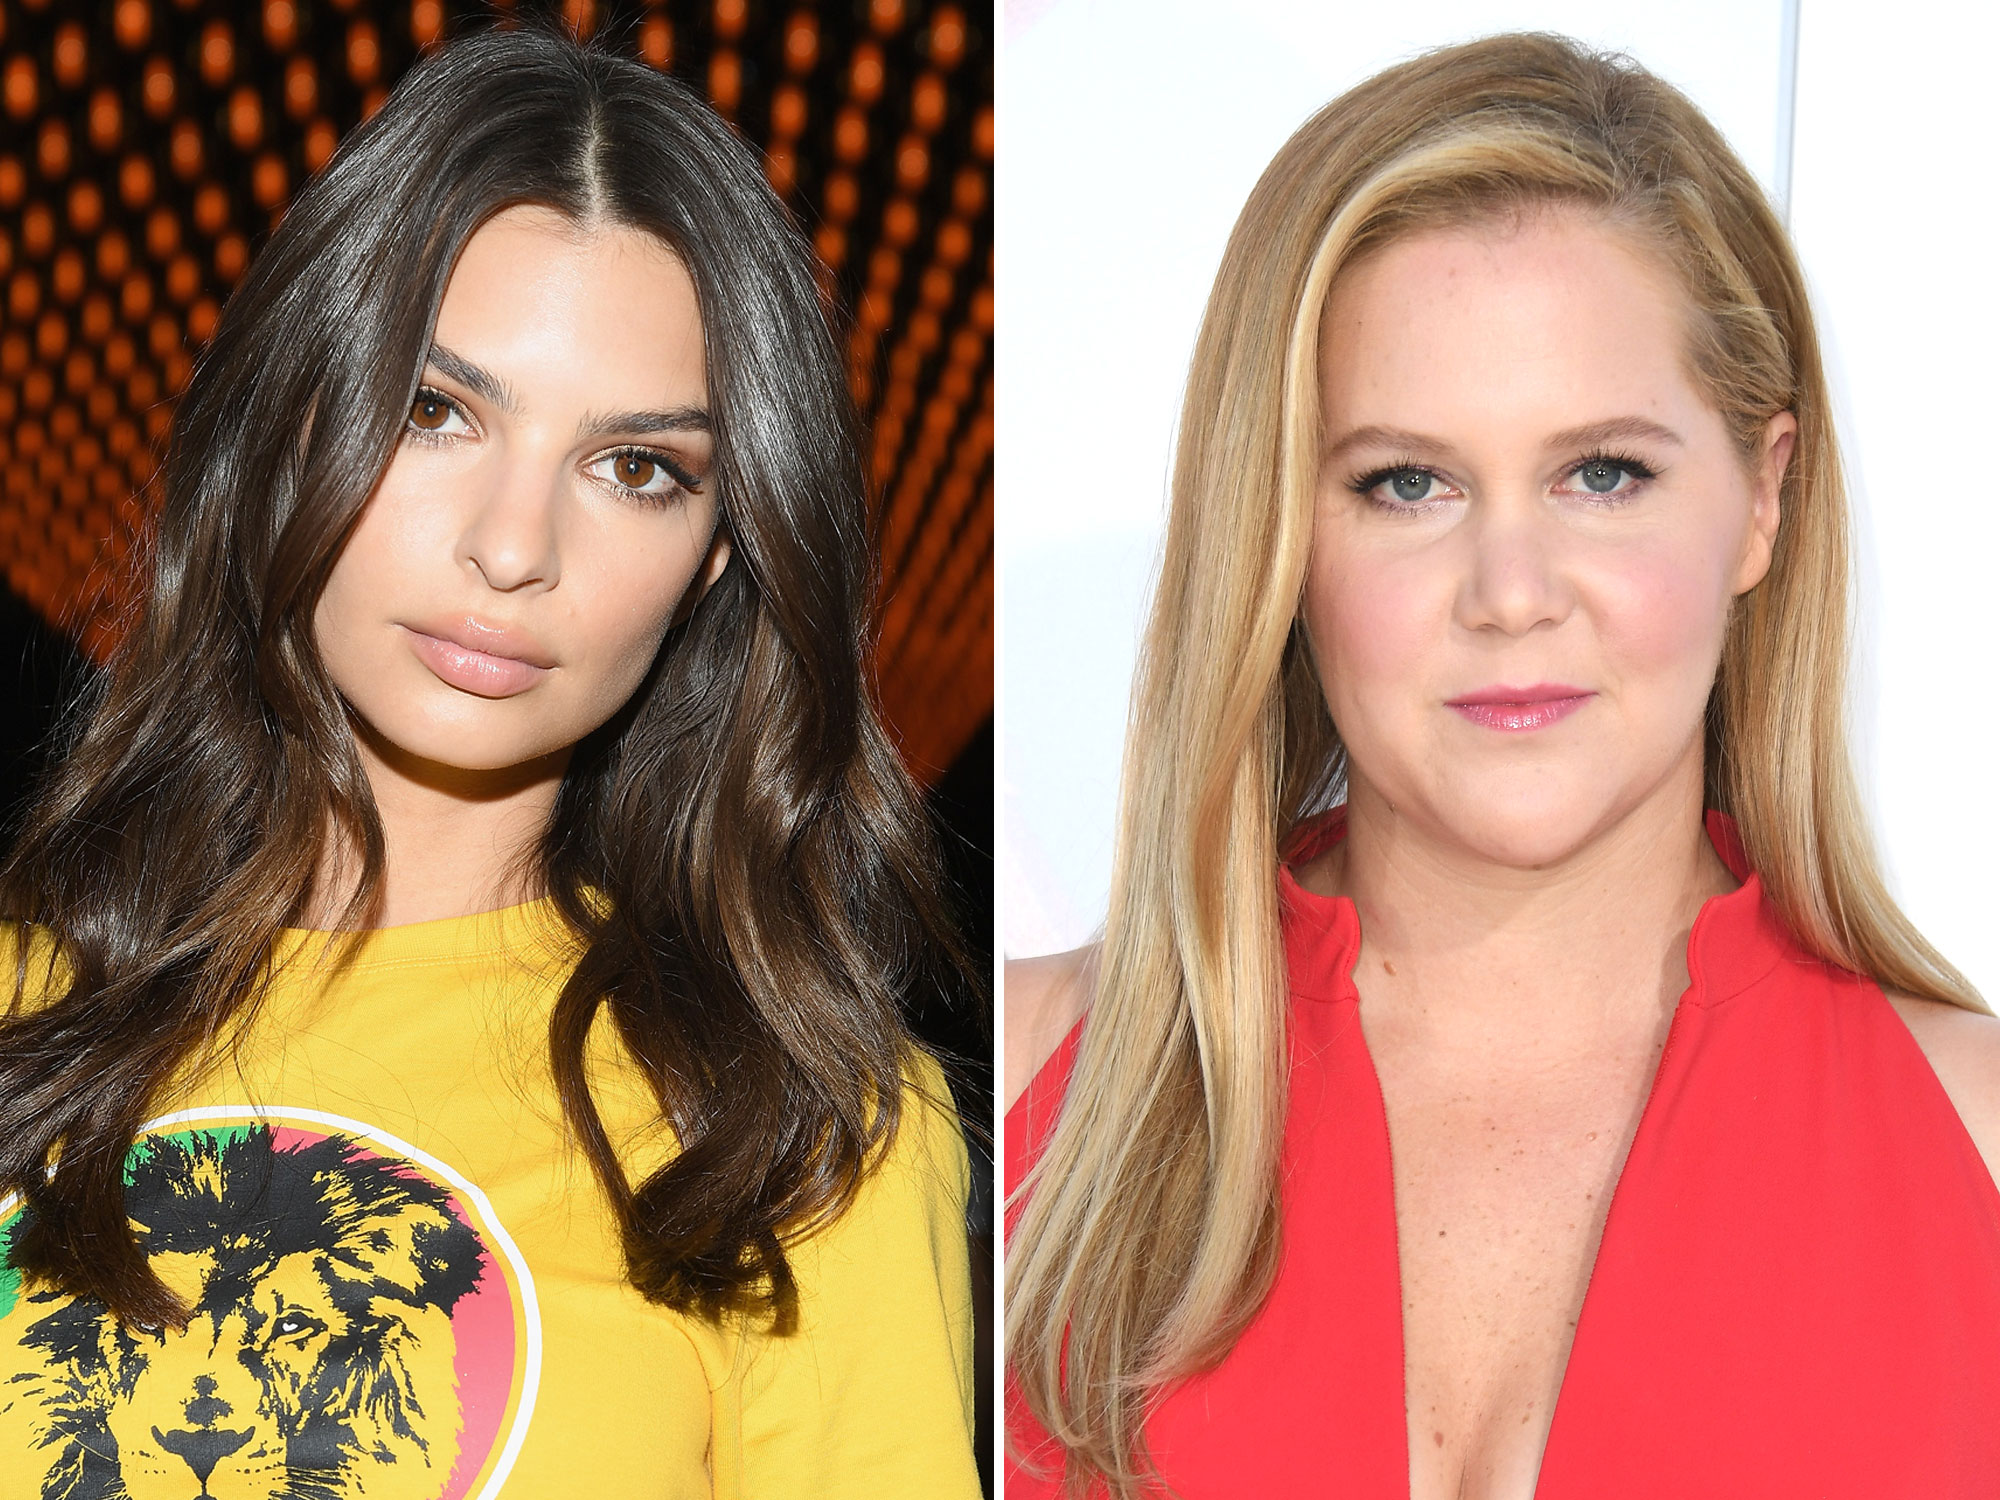 Emily Ratajkowski and Amy Schumer Were Detained at a Kavanaugh Protest